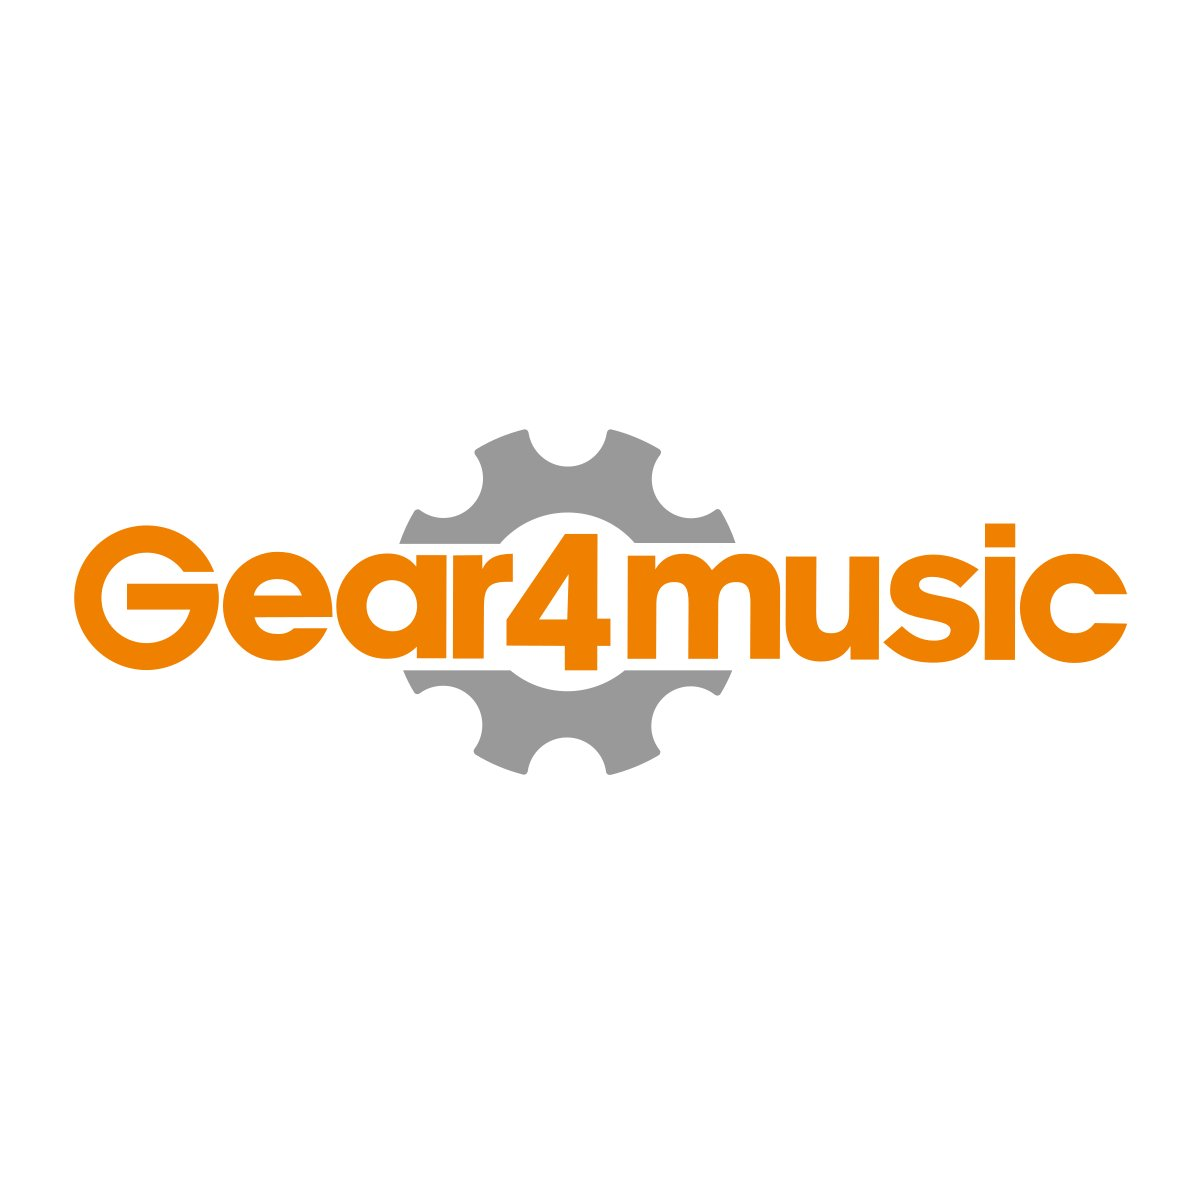 Supporto per Rullante, Gear4music